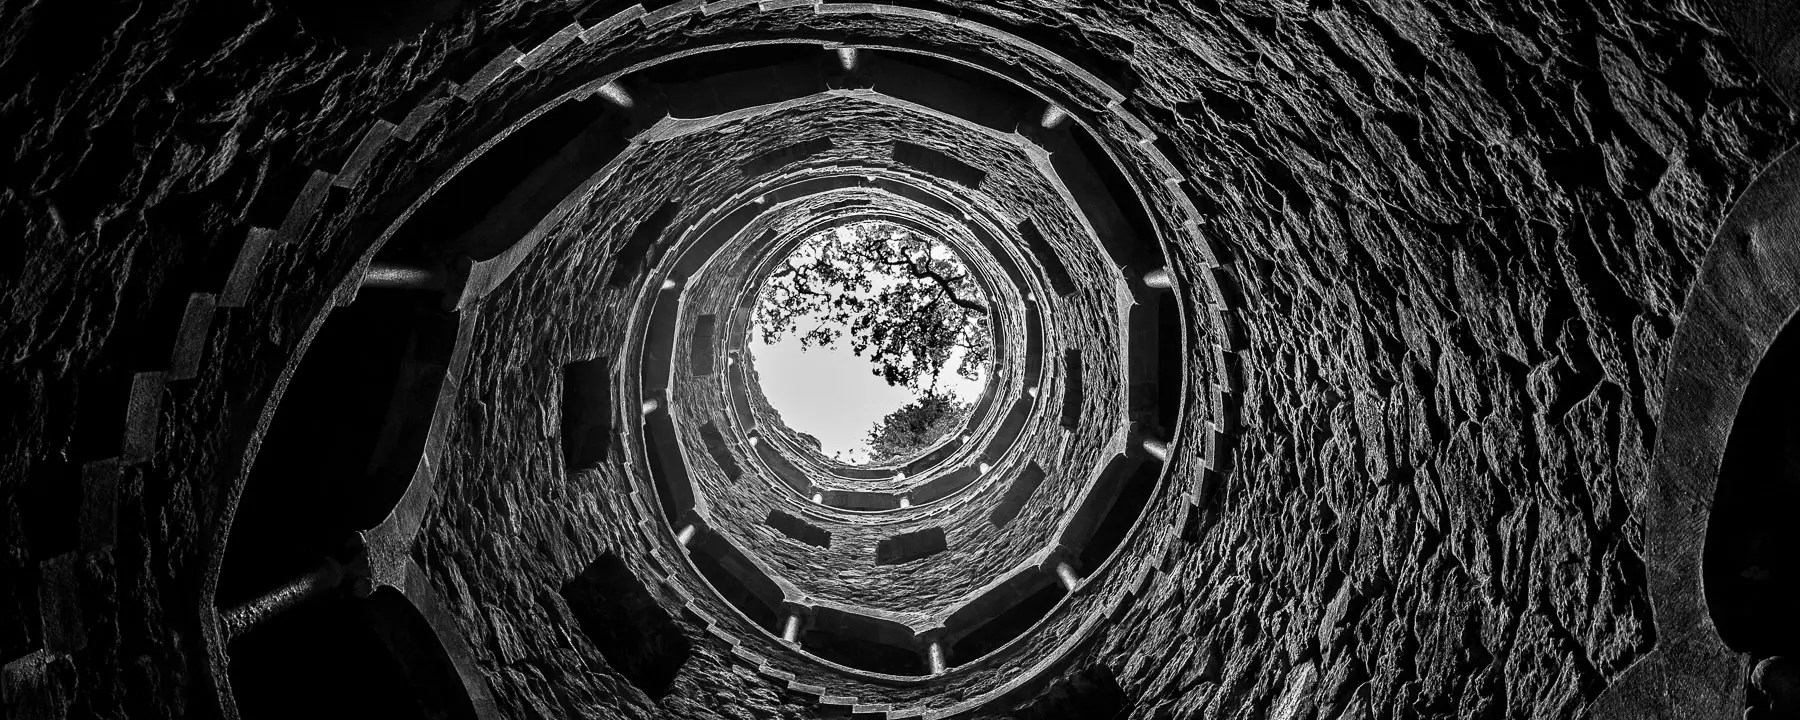 Initiation Tower, Sintra